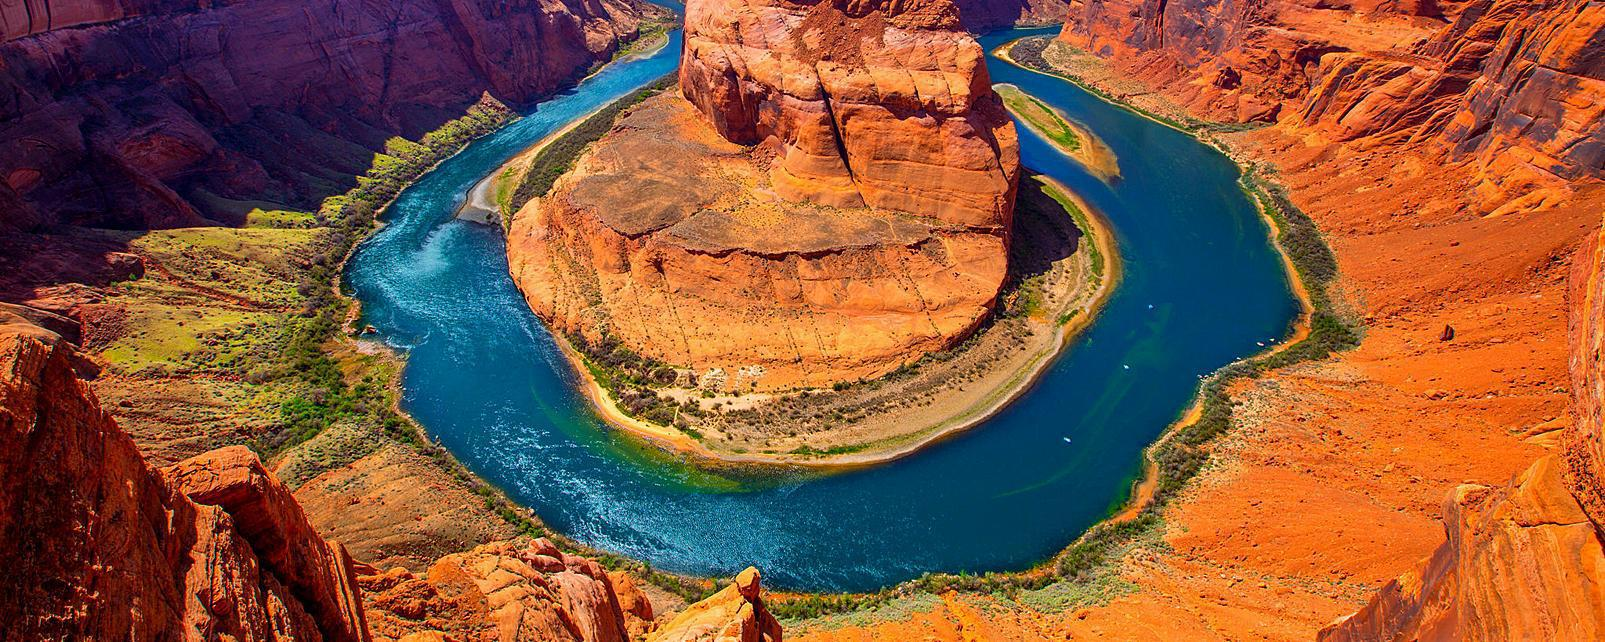 Amérique, Amérique du Nord, Etats-Unis, Arizona, Colorado, USA, Glen Canyon, Horseshoe bend